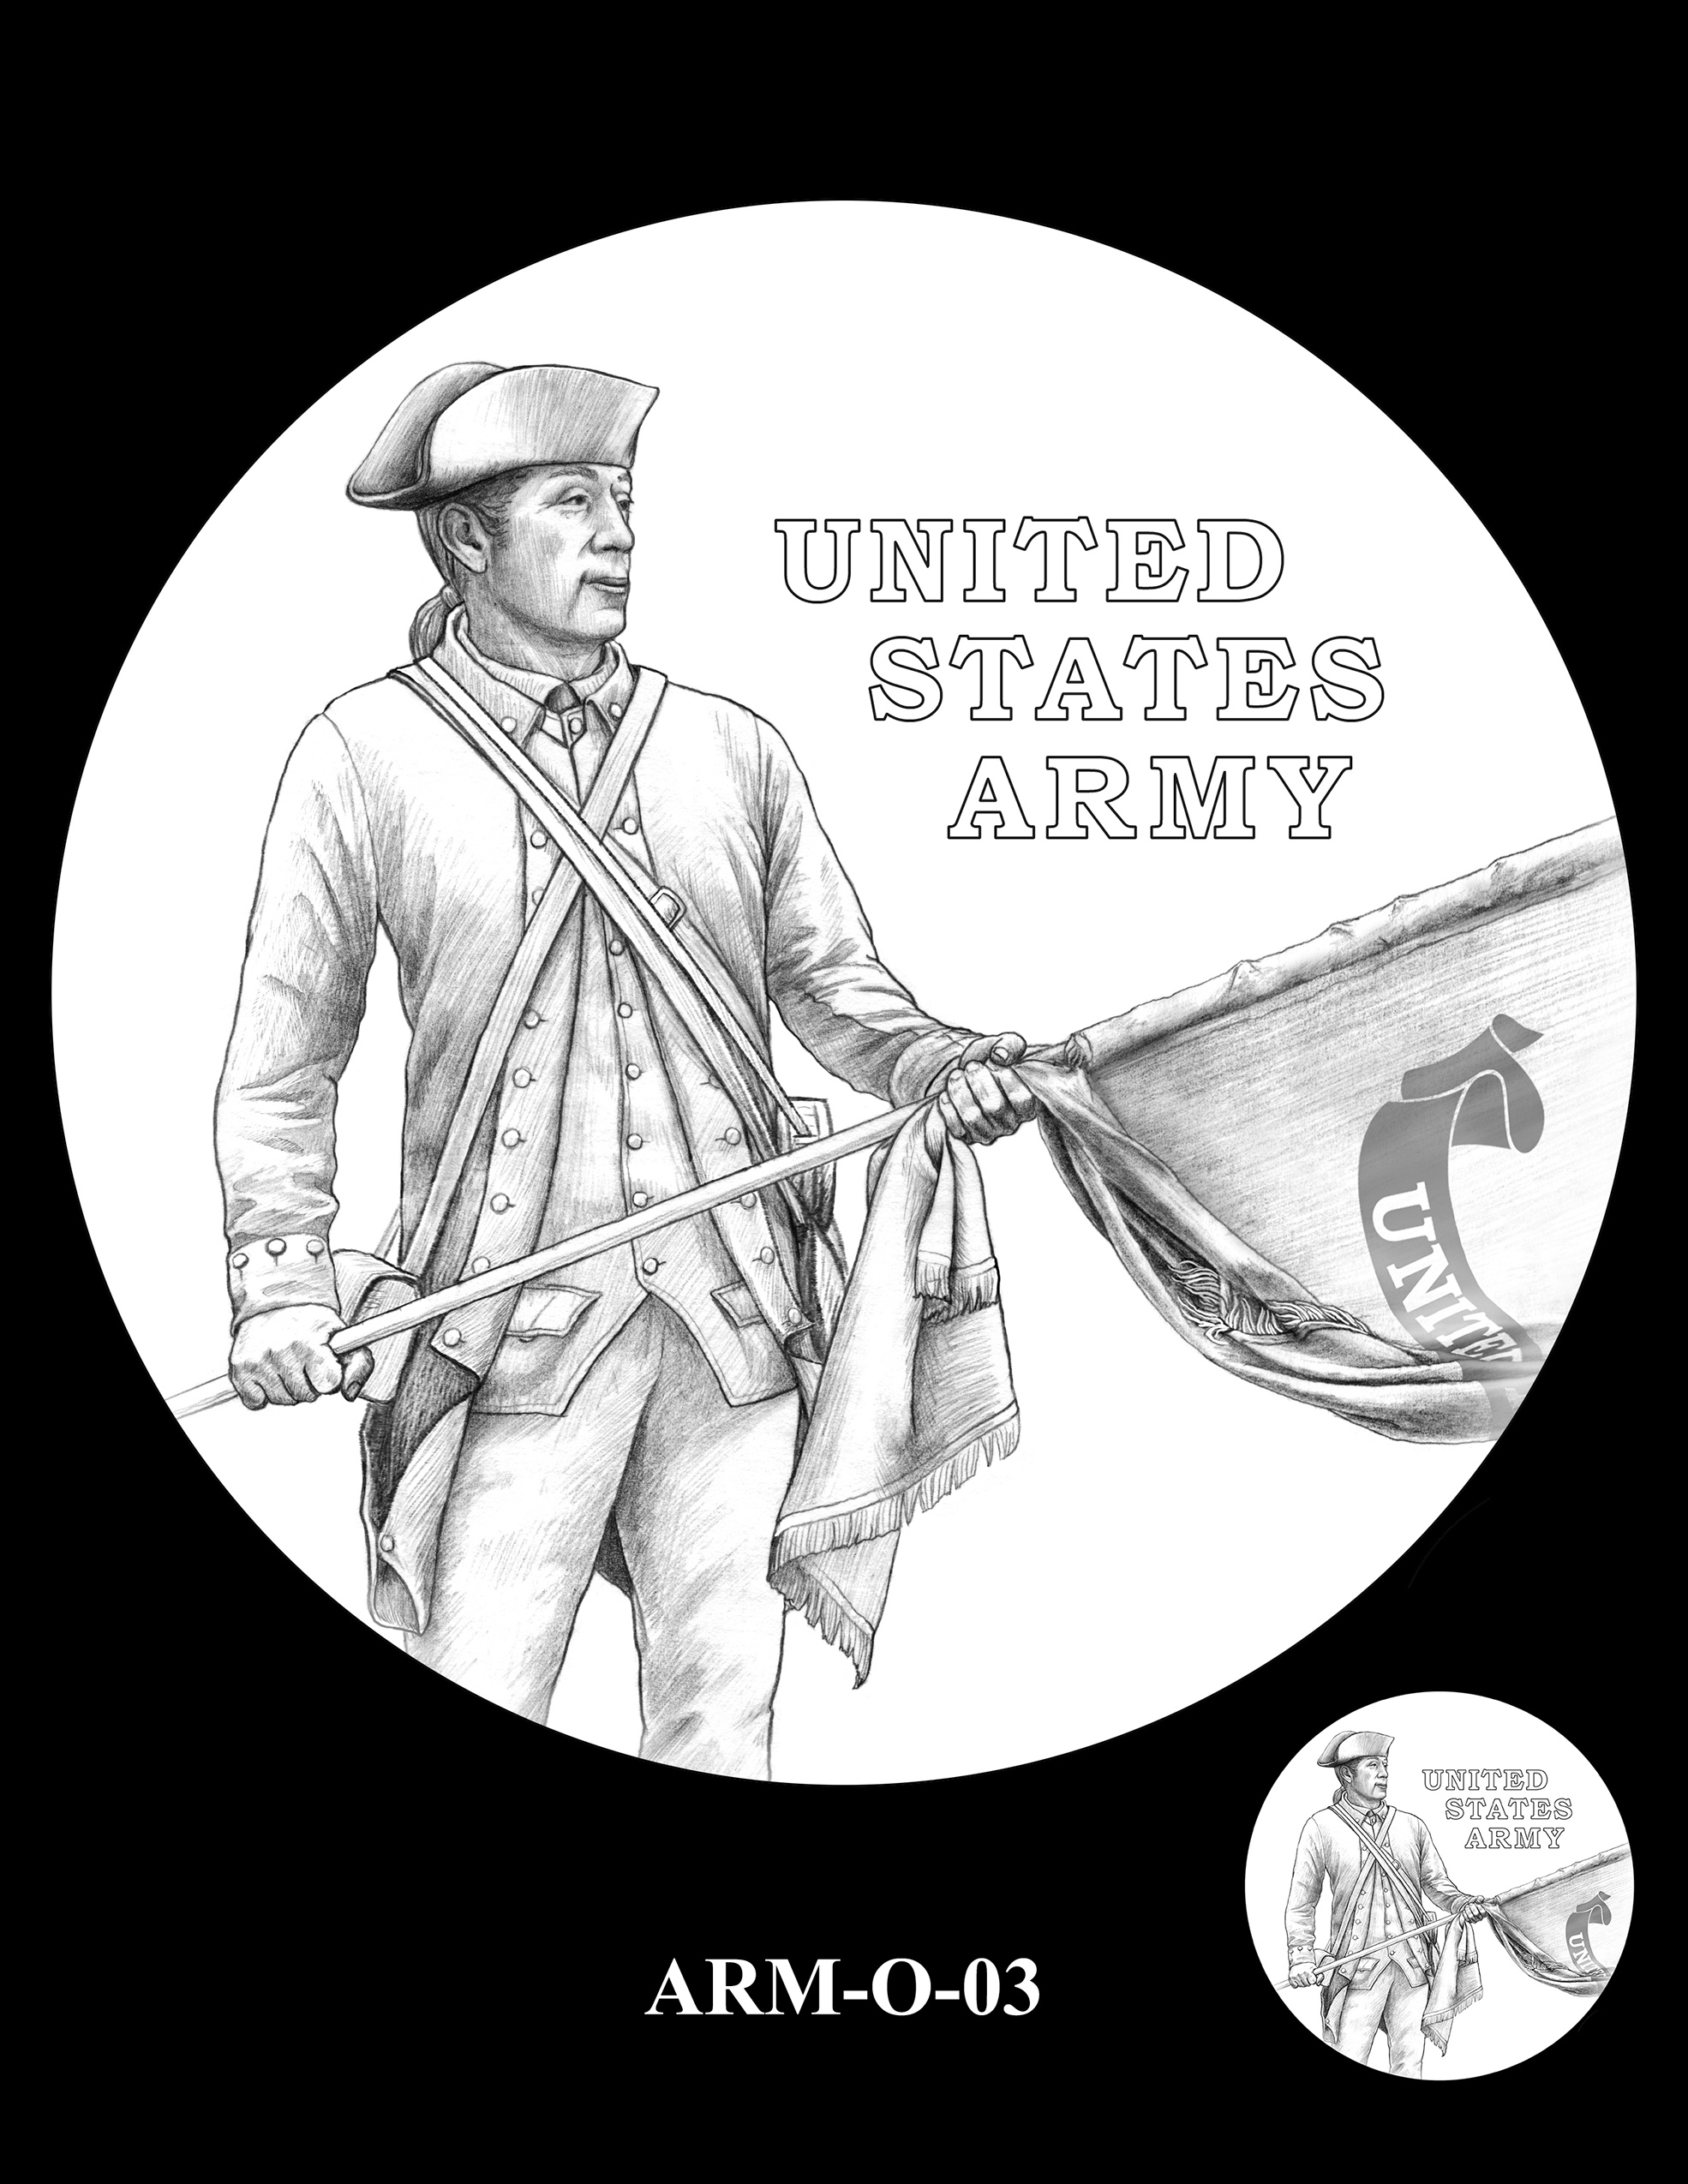 ARM-O-03 -- United States Army Silver Medal